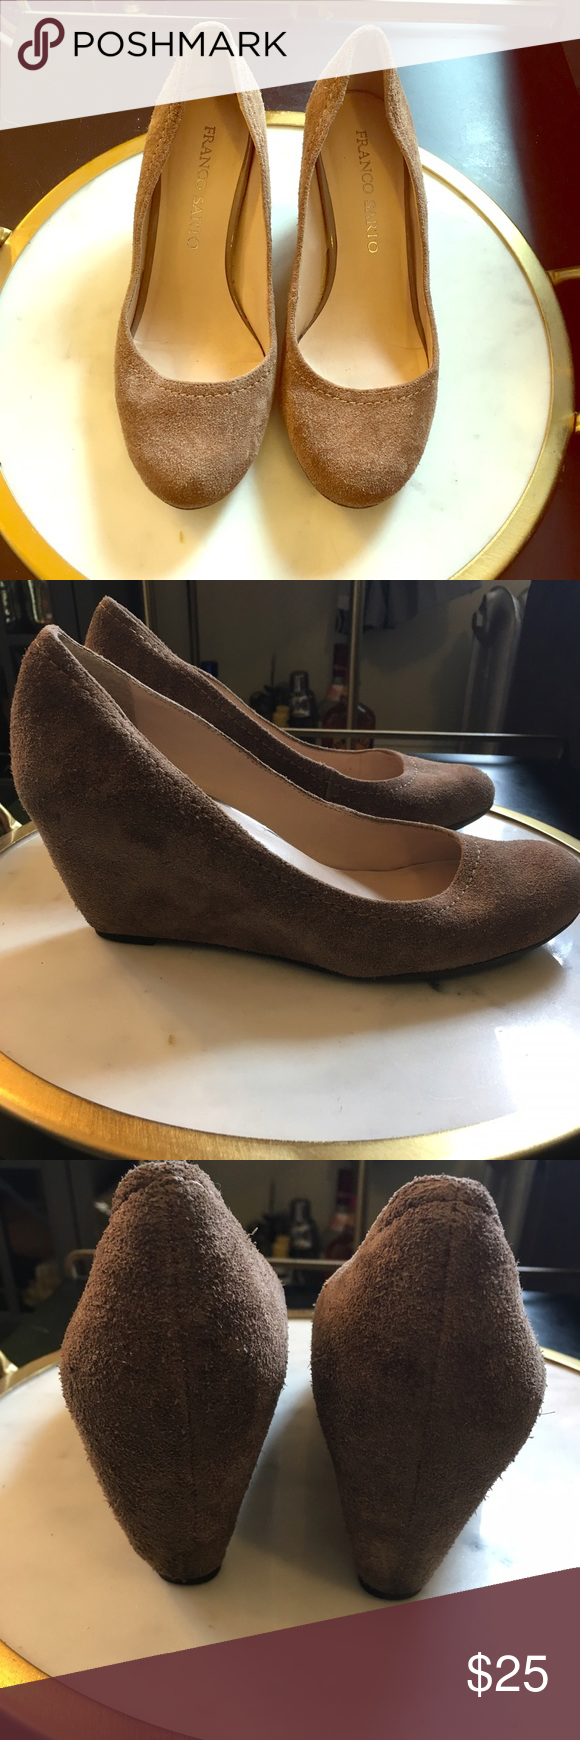 NWOT Franco Sarto Suede Wedge Heels Brand new without tags Franco Sarto suede wedge heels with closed round toe. Color is a dark tan with almost a grayish look to them. Beautiful pair of shoes. Approx 3.5 inch heel Franco Sarto Shoes Wedges